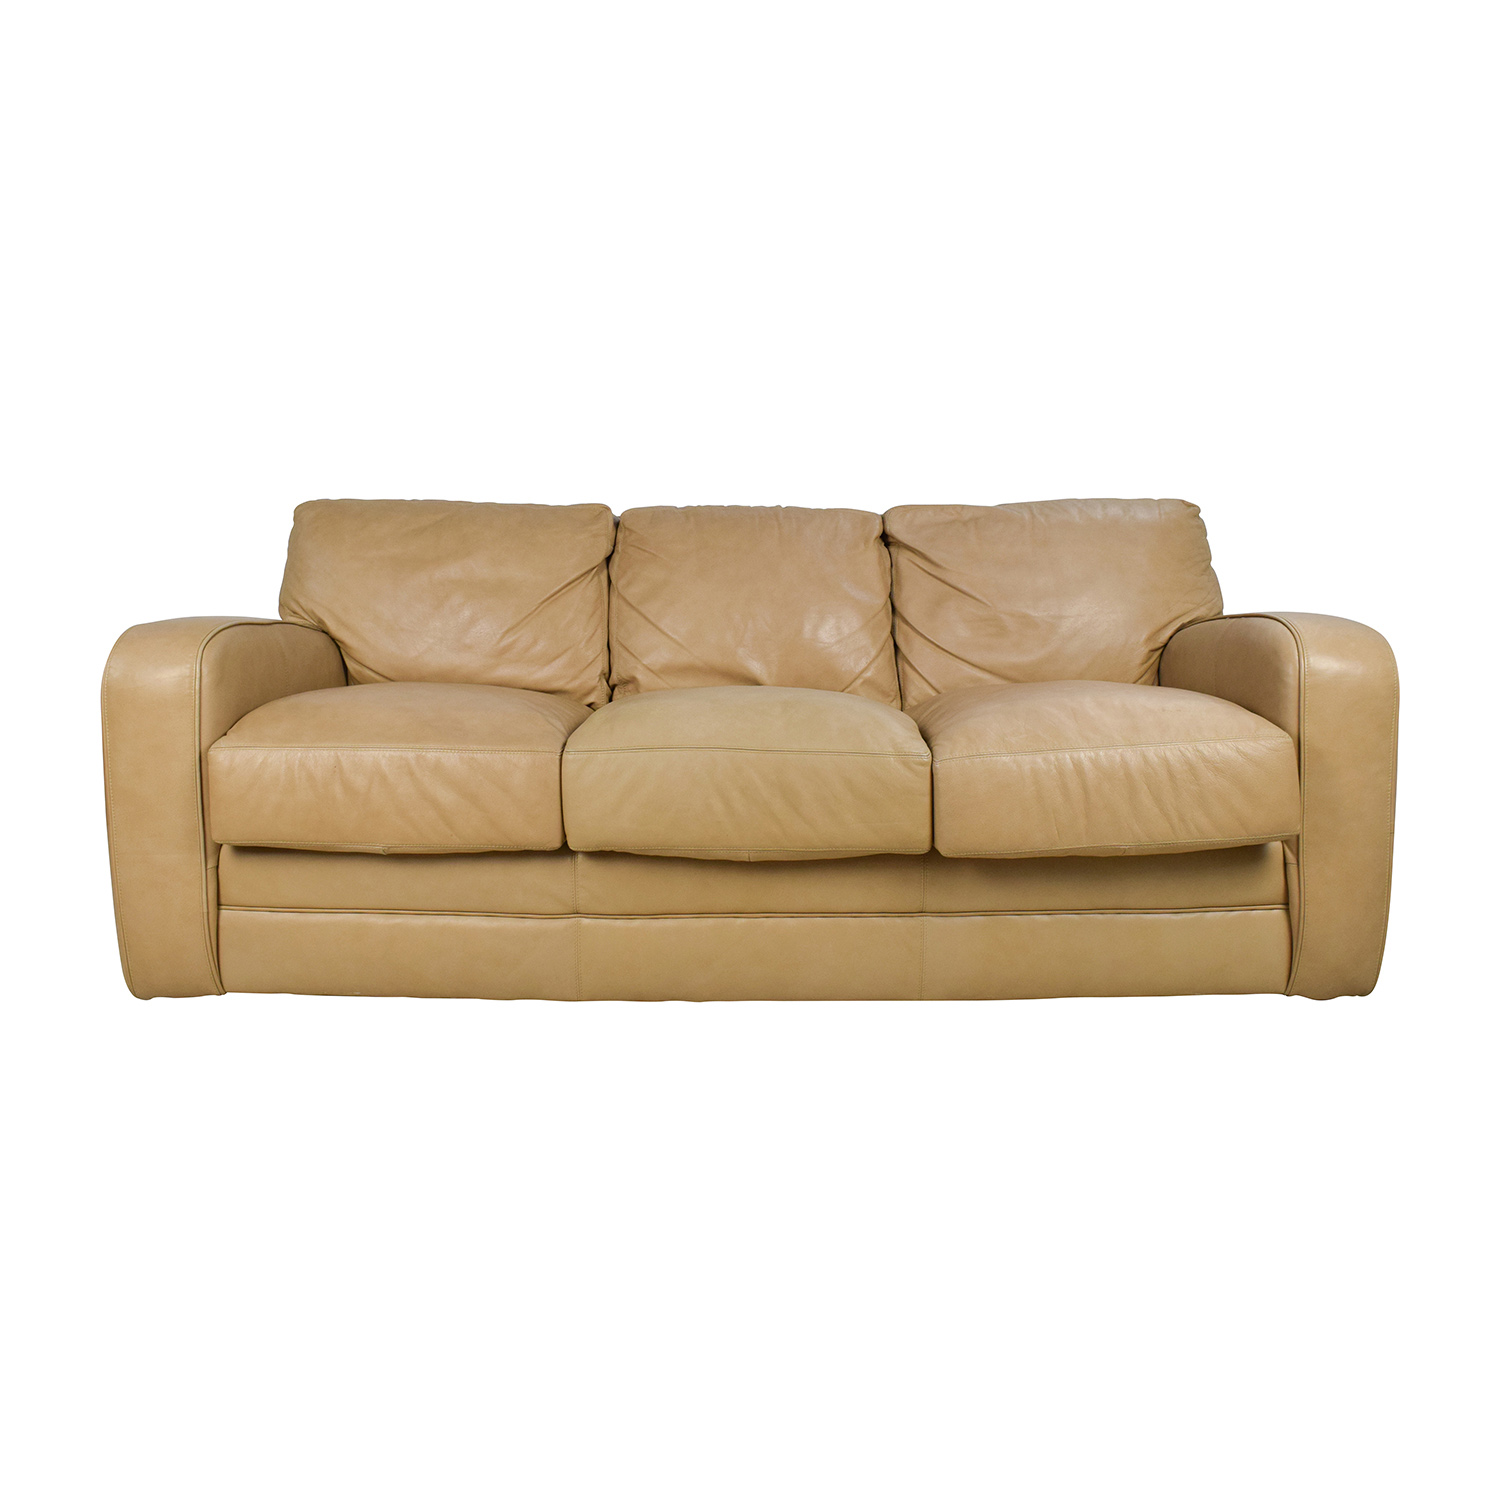 Second Hand Leather Sofas Thesofa